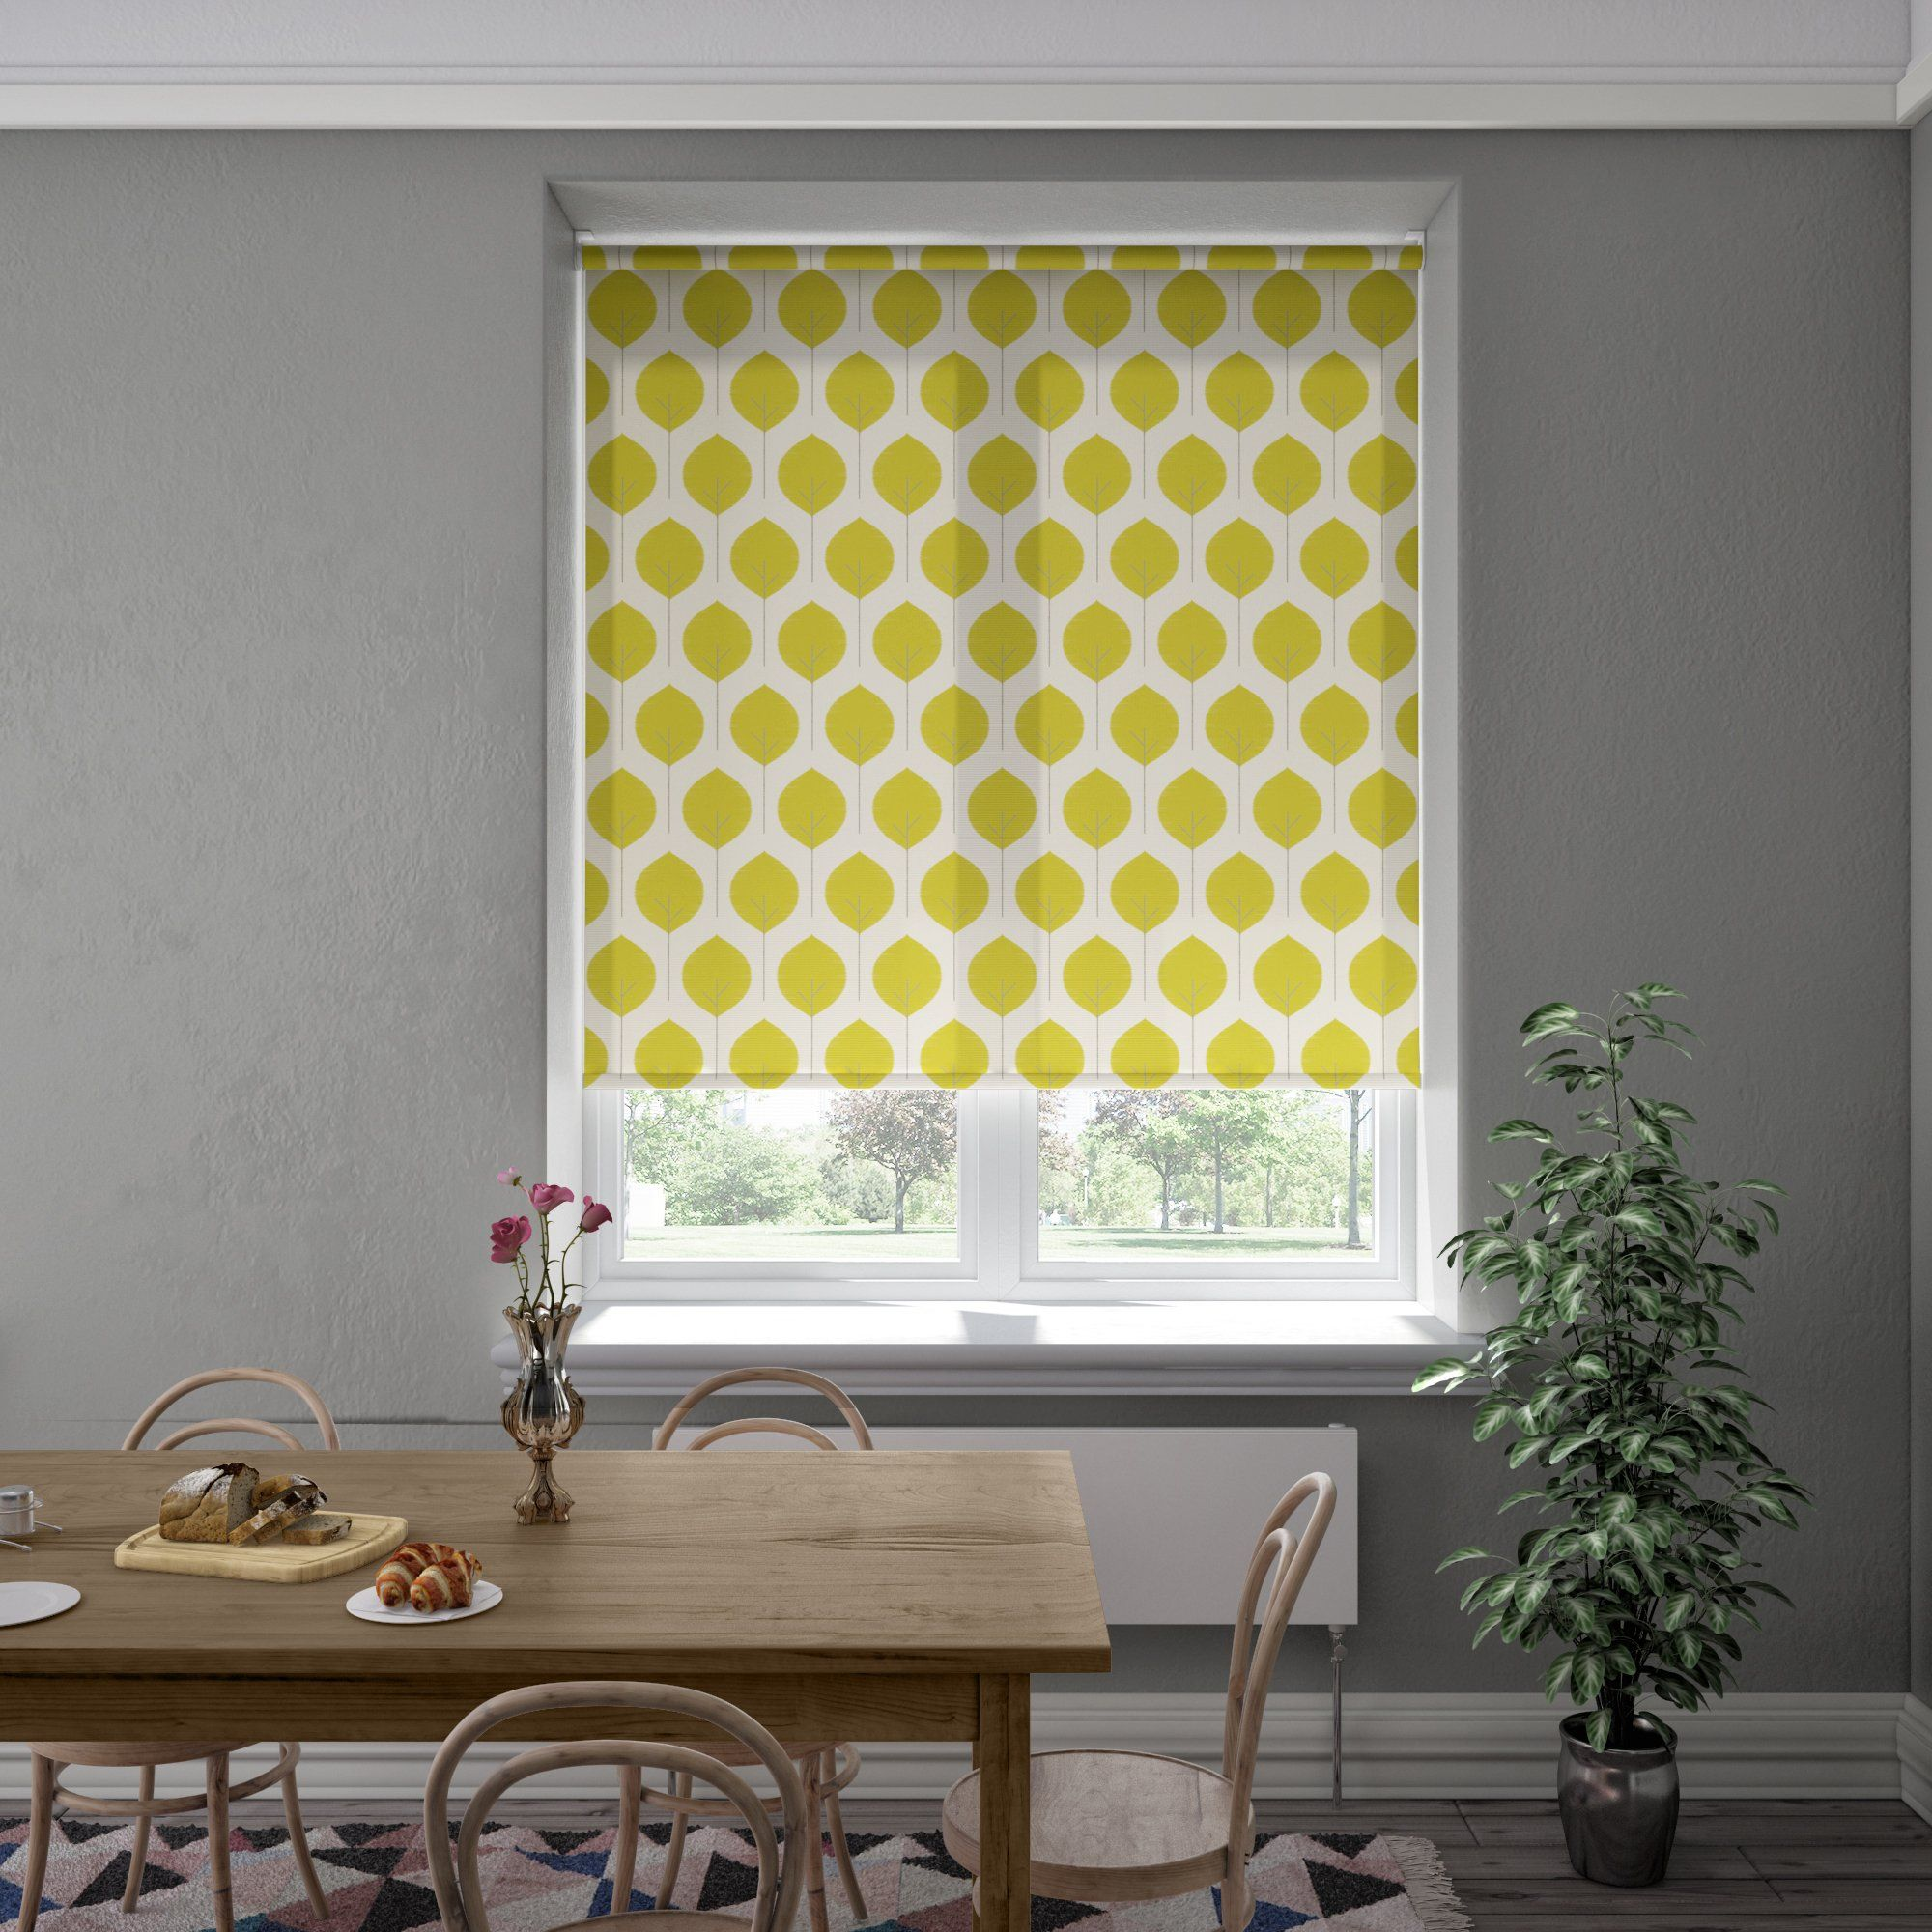 The Abaca Roller Blind is part of the dim out range of made to measure blinds, diffusing some light. This contemporary style blind is set on a lovely off-white background with a lovely tree design, creating a calm and relaxing feel to the window of your choice.